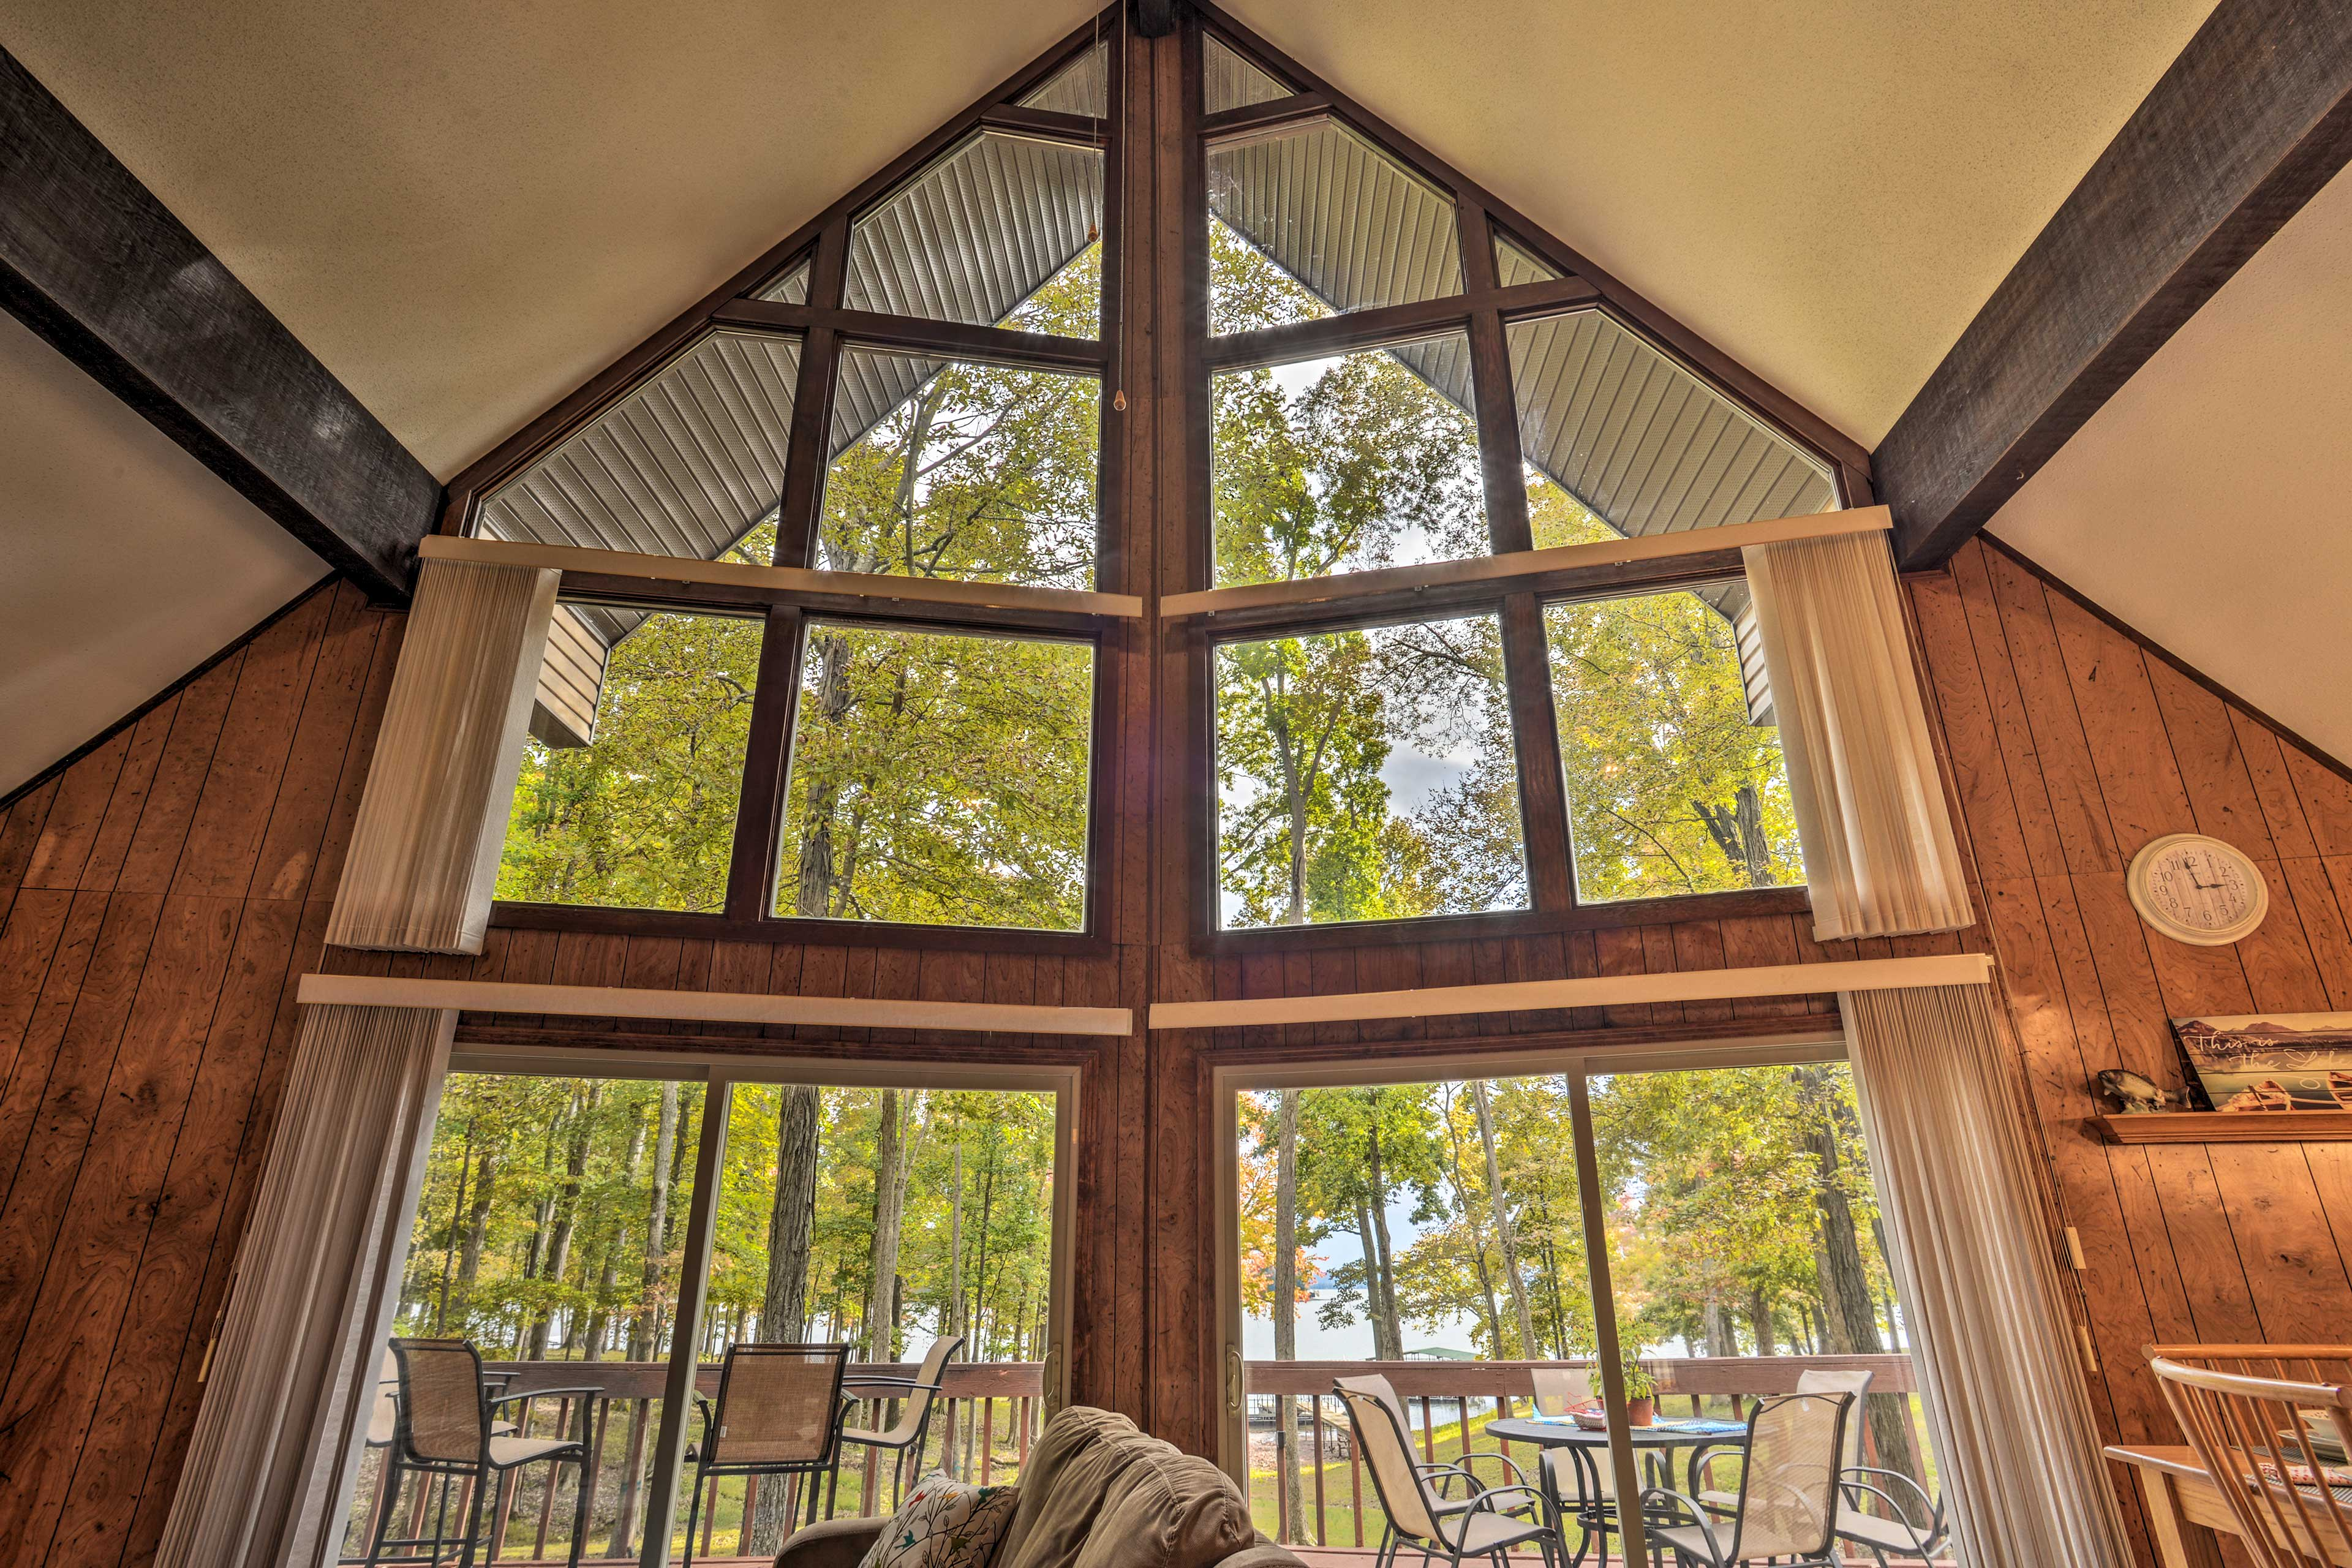 Floor-to-ceiling windows reveal the vibrant surrounding trees.